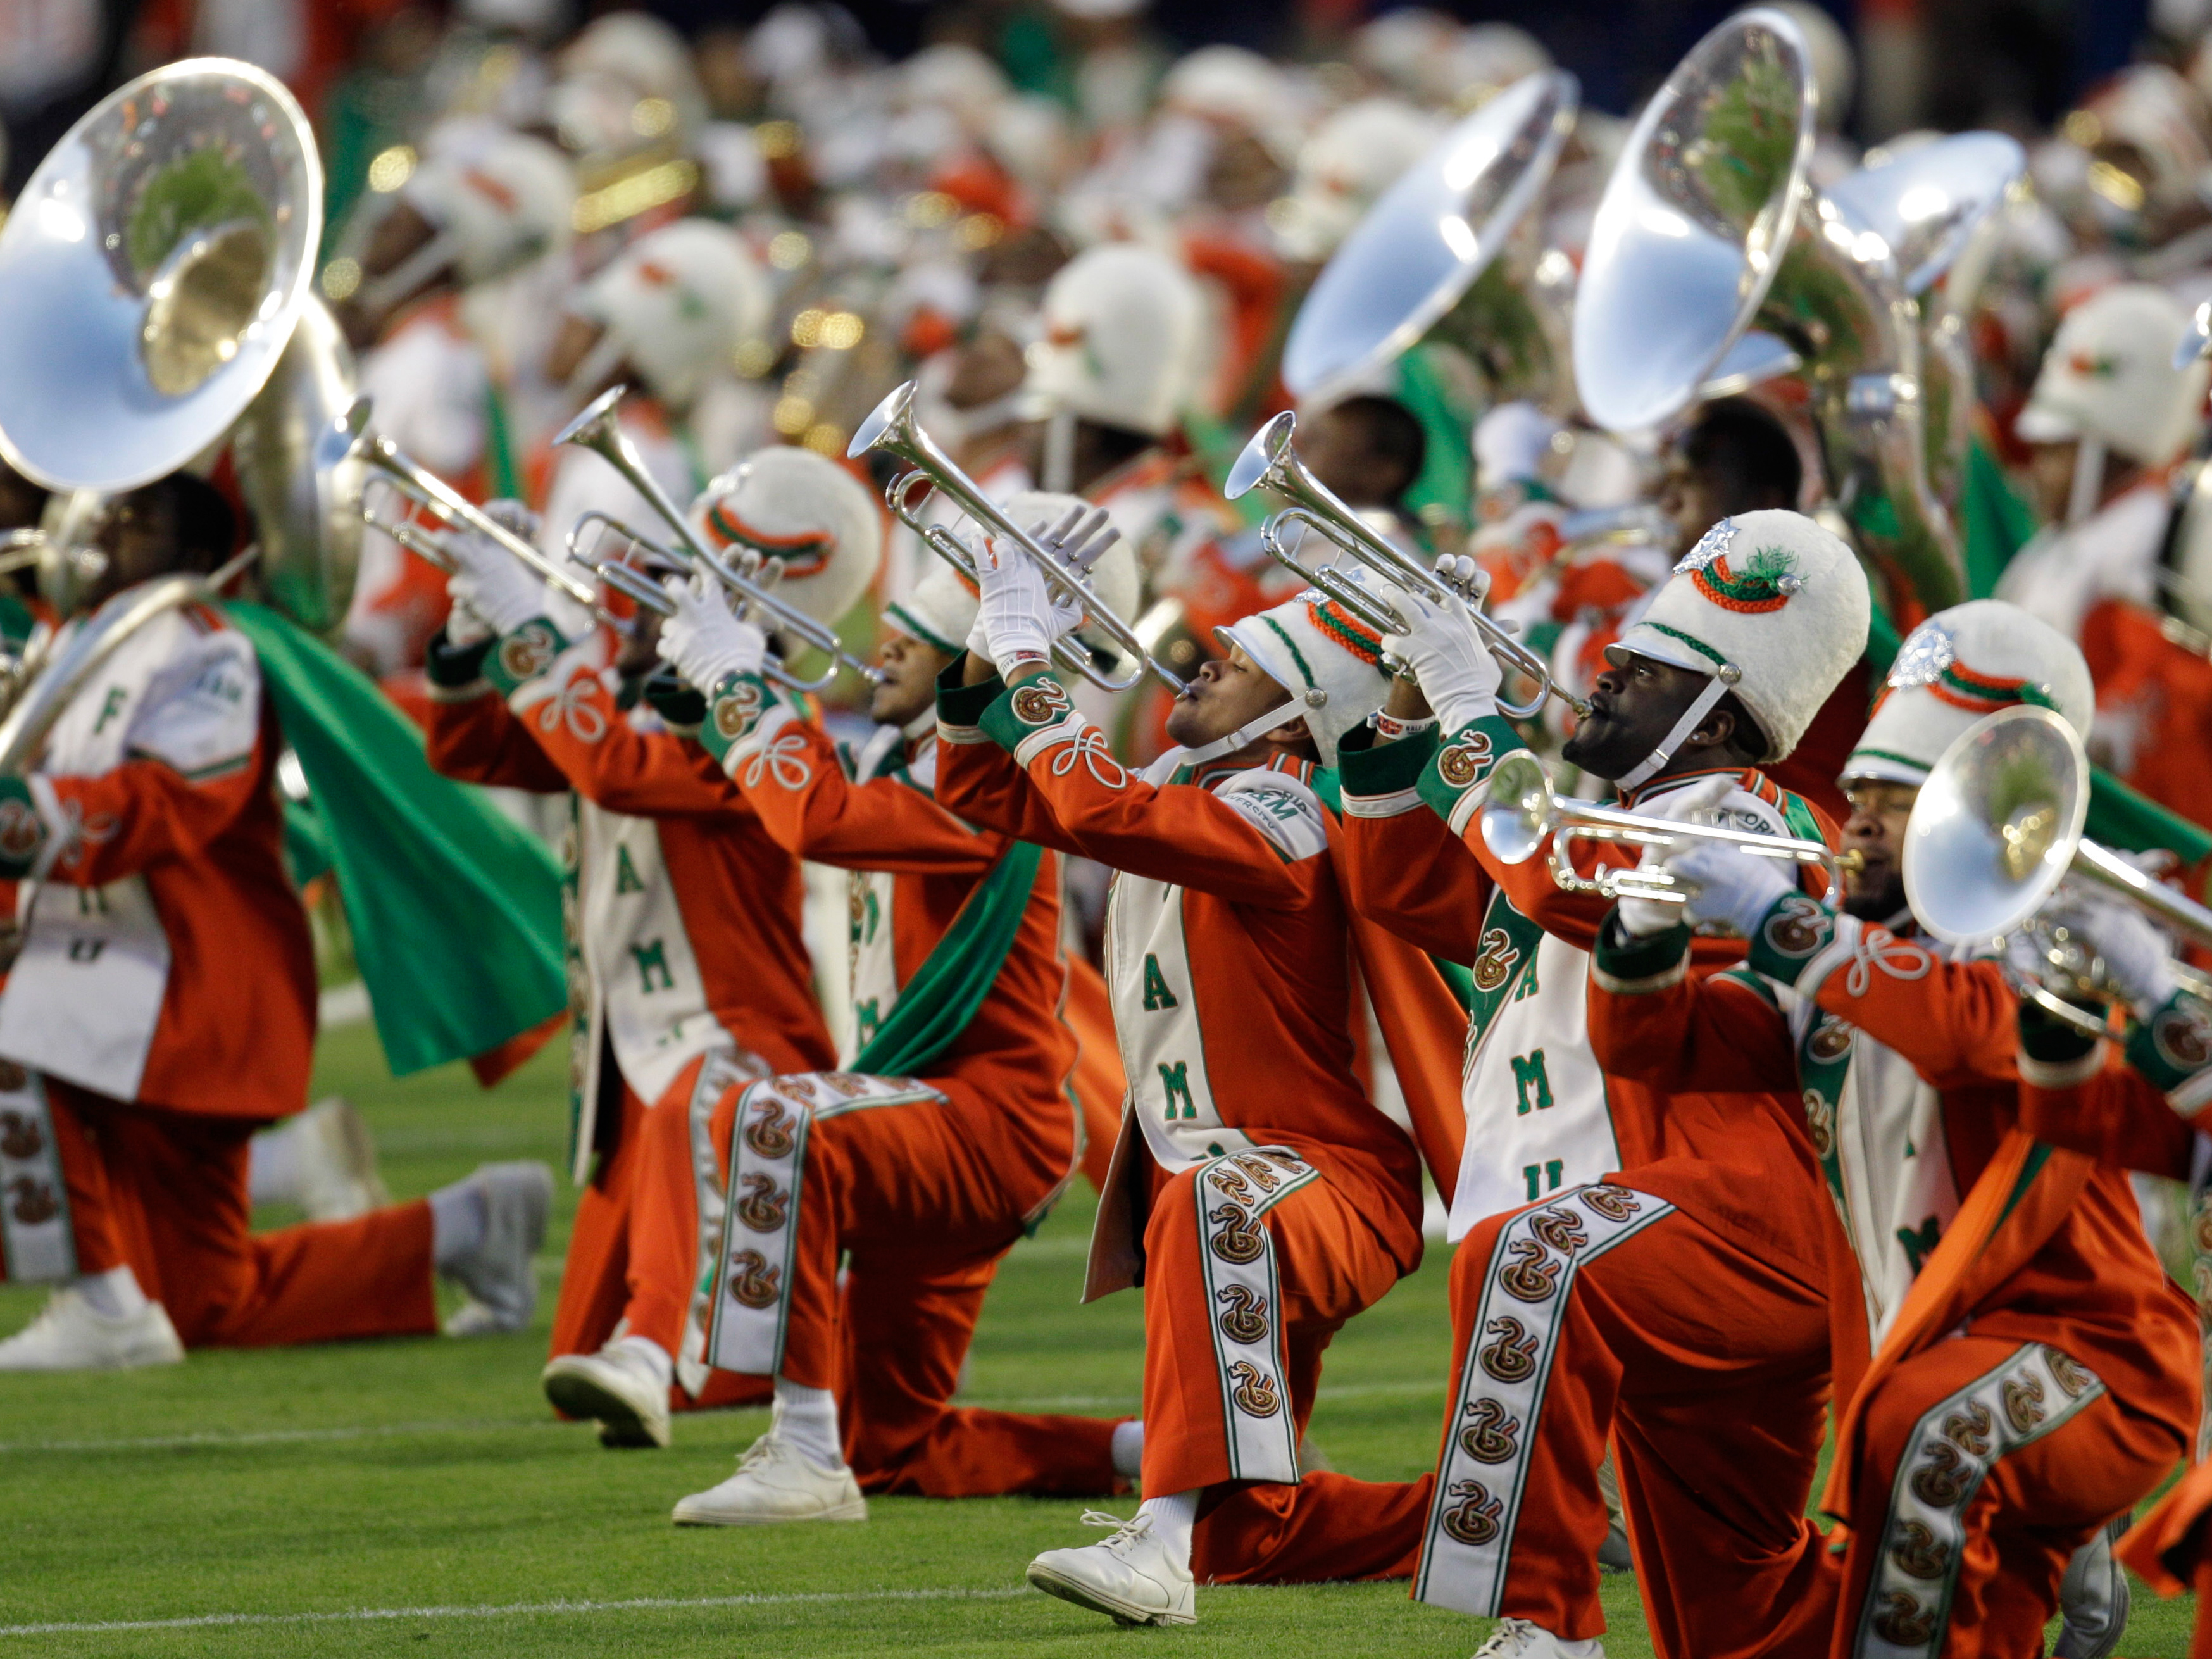 4 Florida A&M band members arrested for hazing beatings